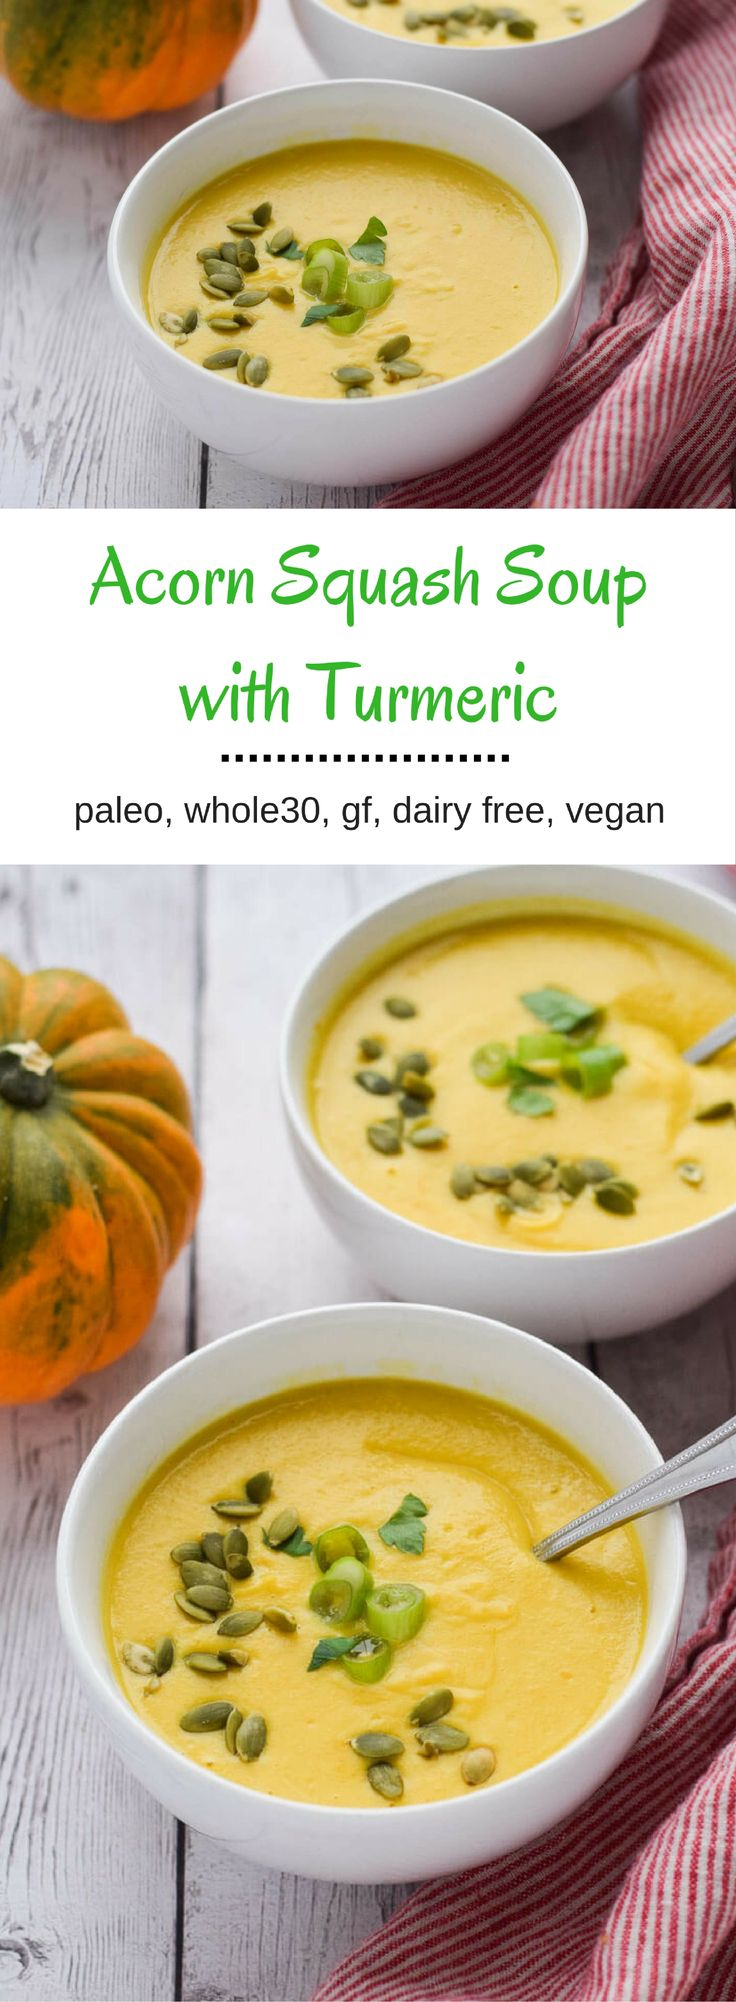 Acorn Squash Soup with Turmeric - creamy and delicious.  Make ahead and eat healthy all week. {paleo, whole30, gluten free, dairy free, vegan}